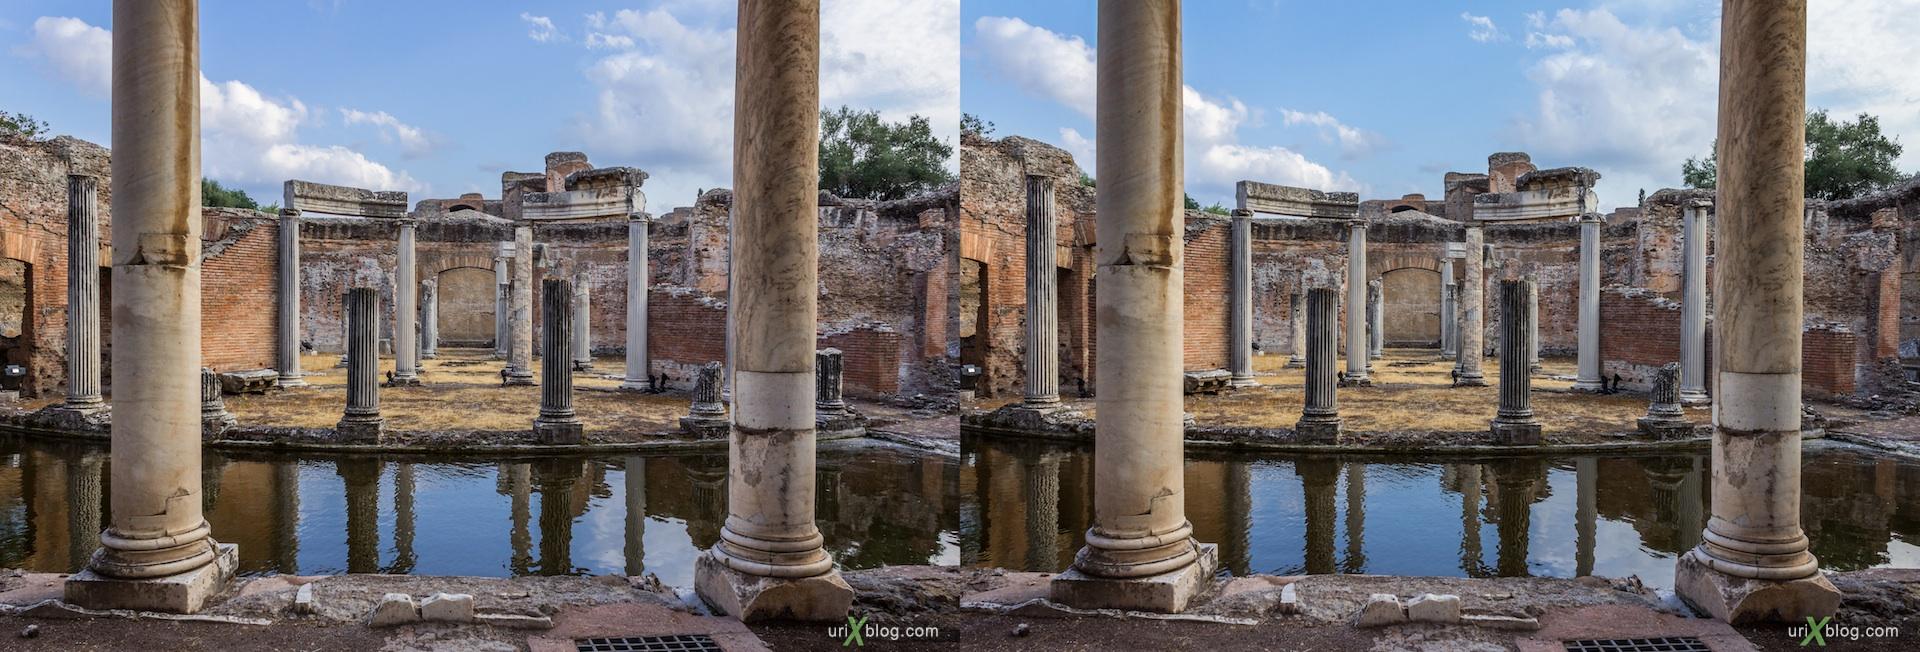 2012, Teatro Marittimo, Villa Adriana, Italy, Tivoli, Ancient Rome, 3D, stereo pair, cross-eyed, crossview, cross view stereo pair